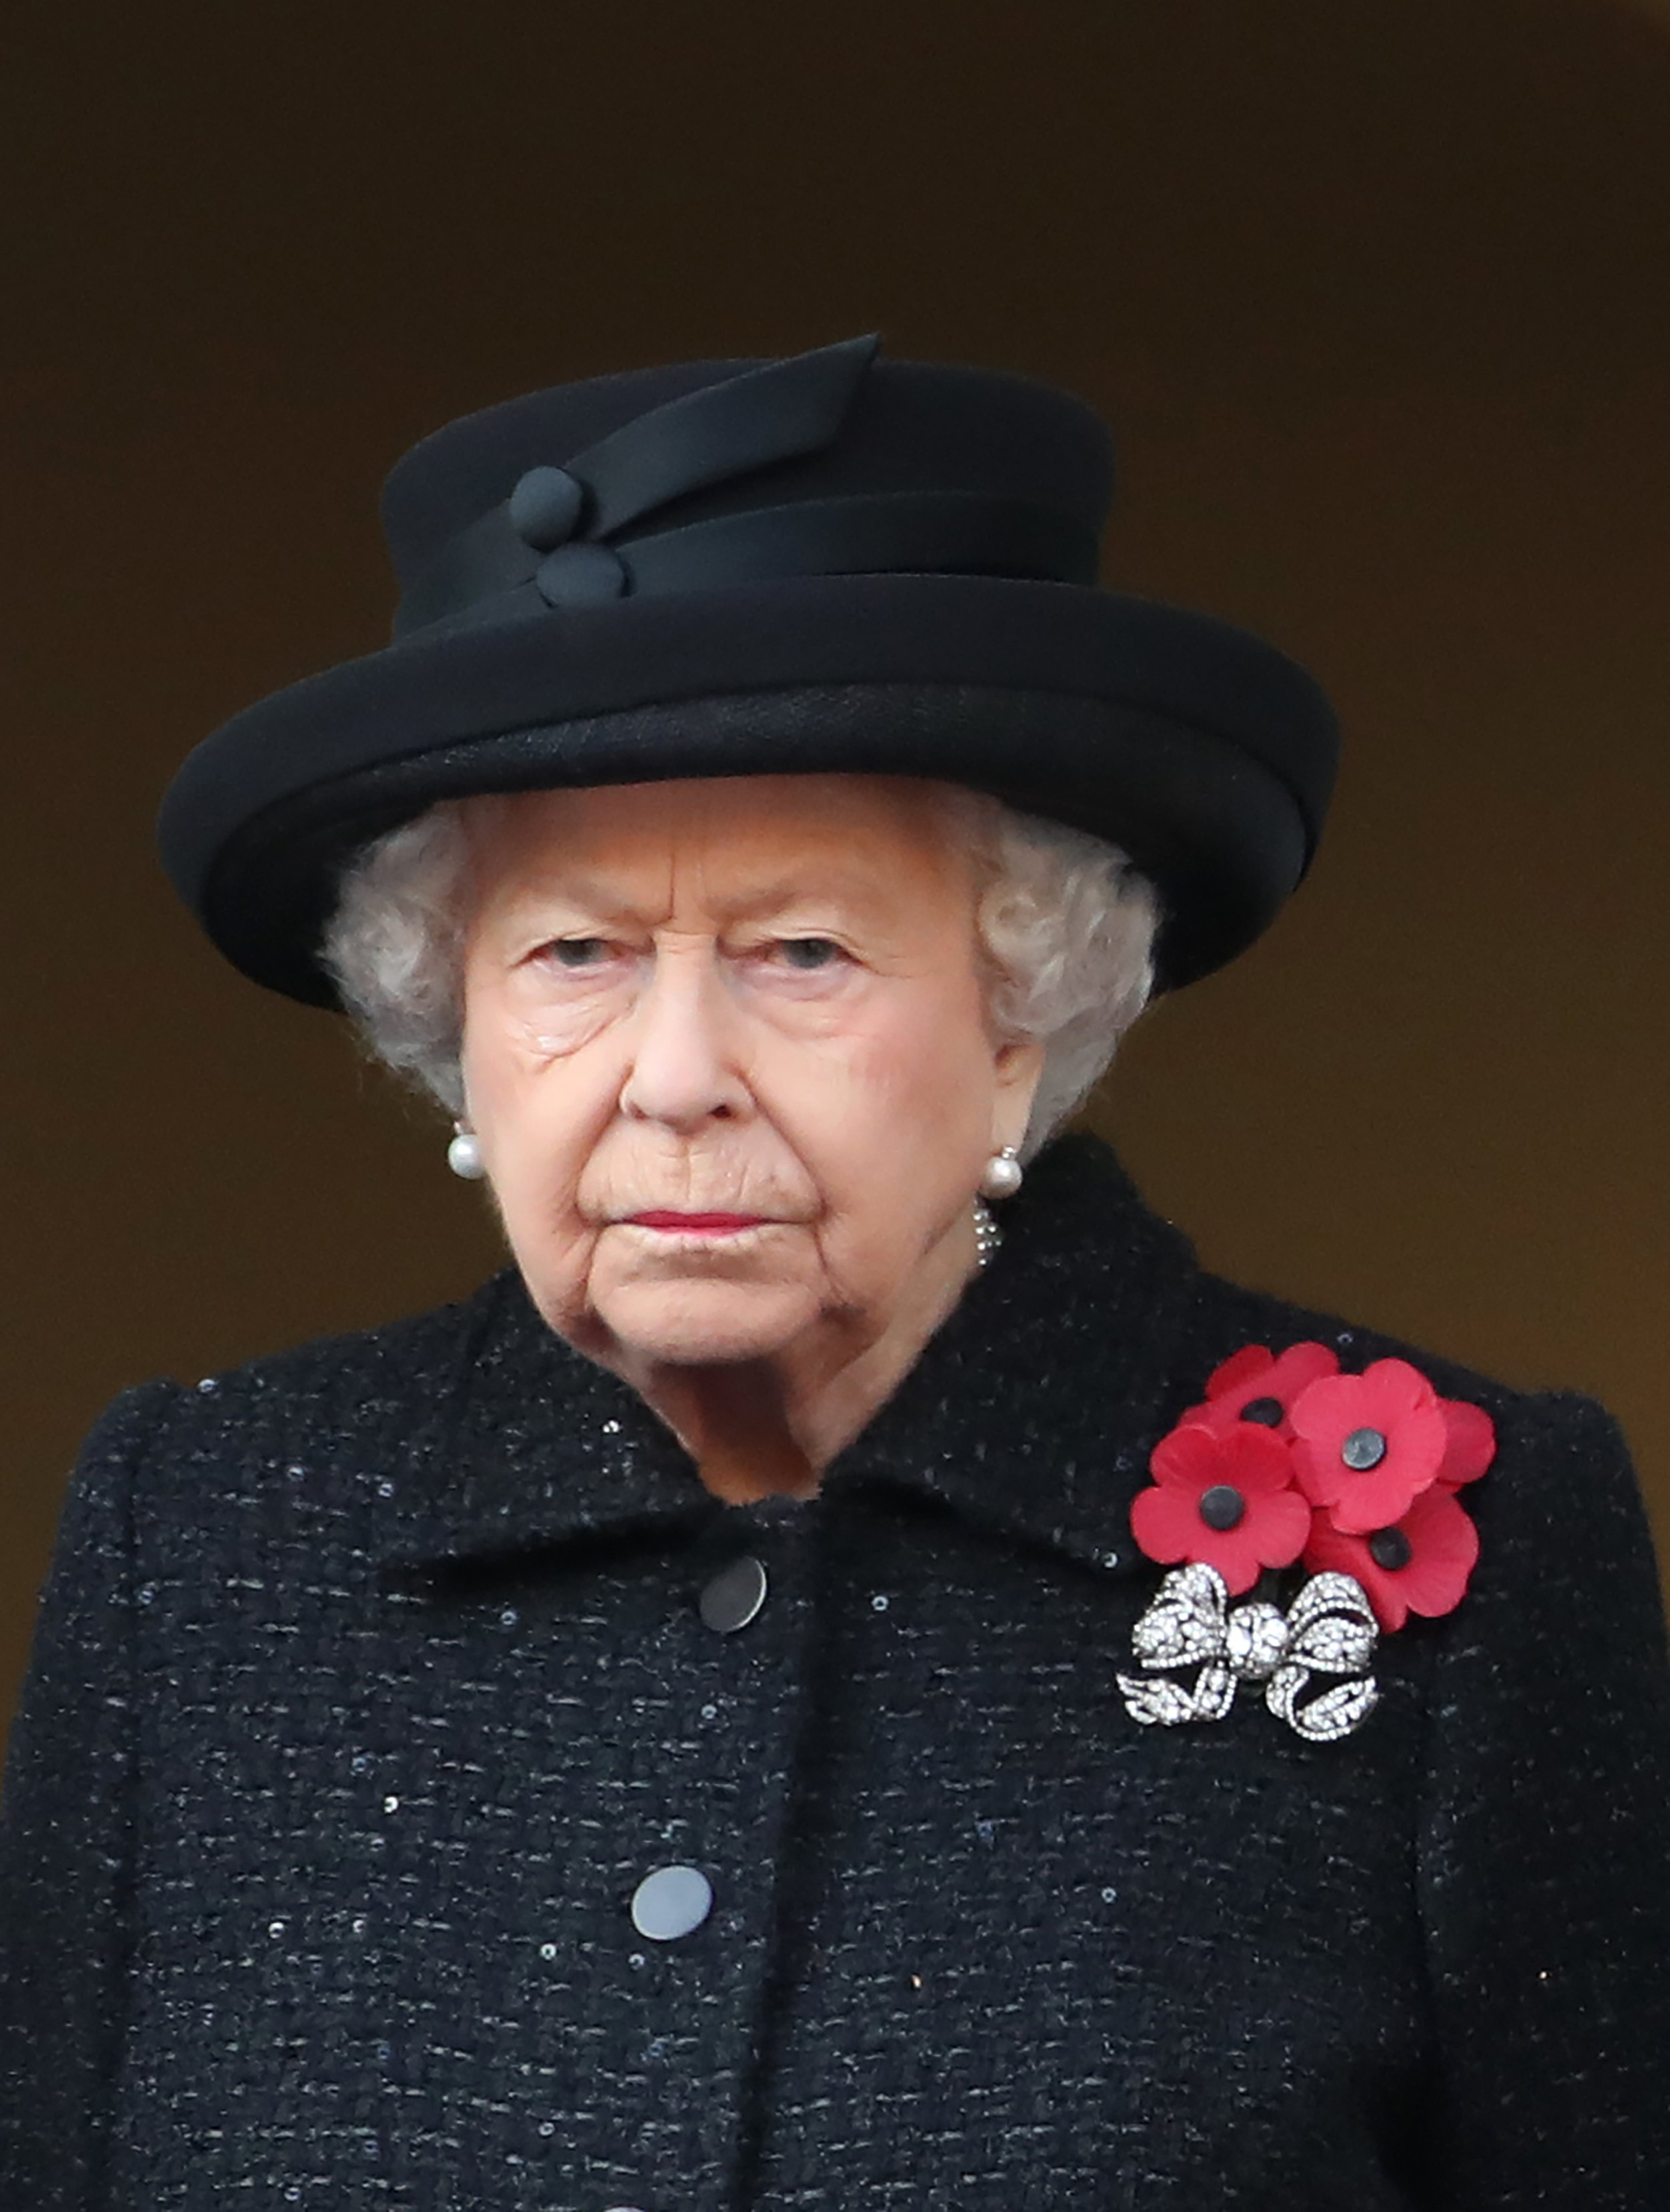 Queen Elizabeth II at the annual Remembrance Sunday memorial at The Cenotaph in London, England.